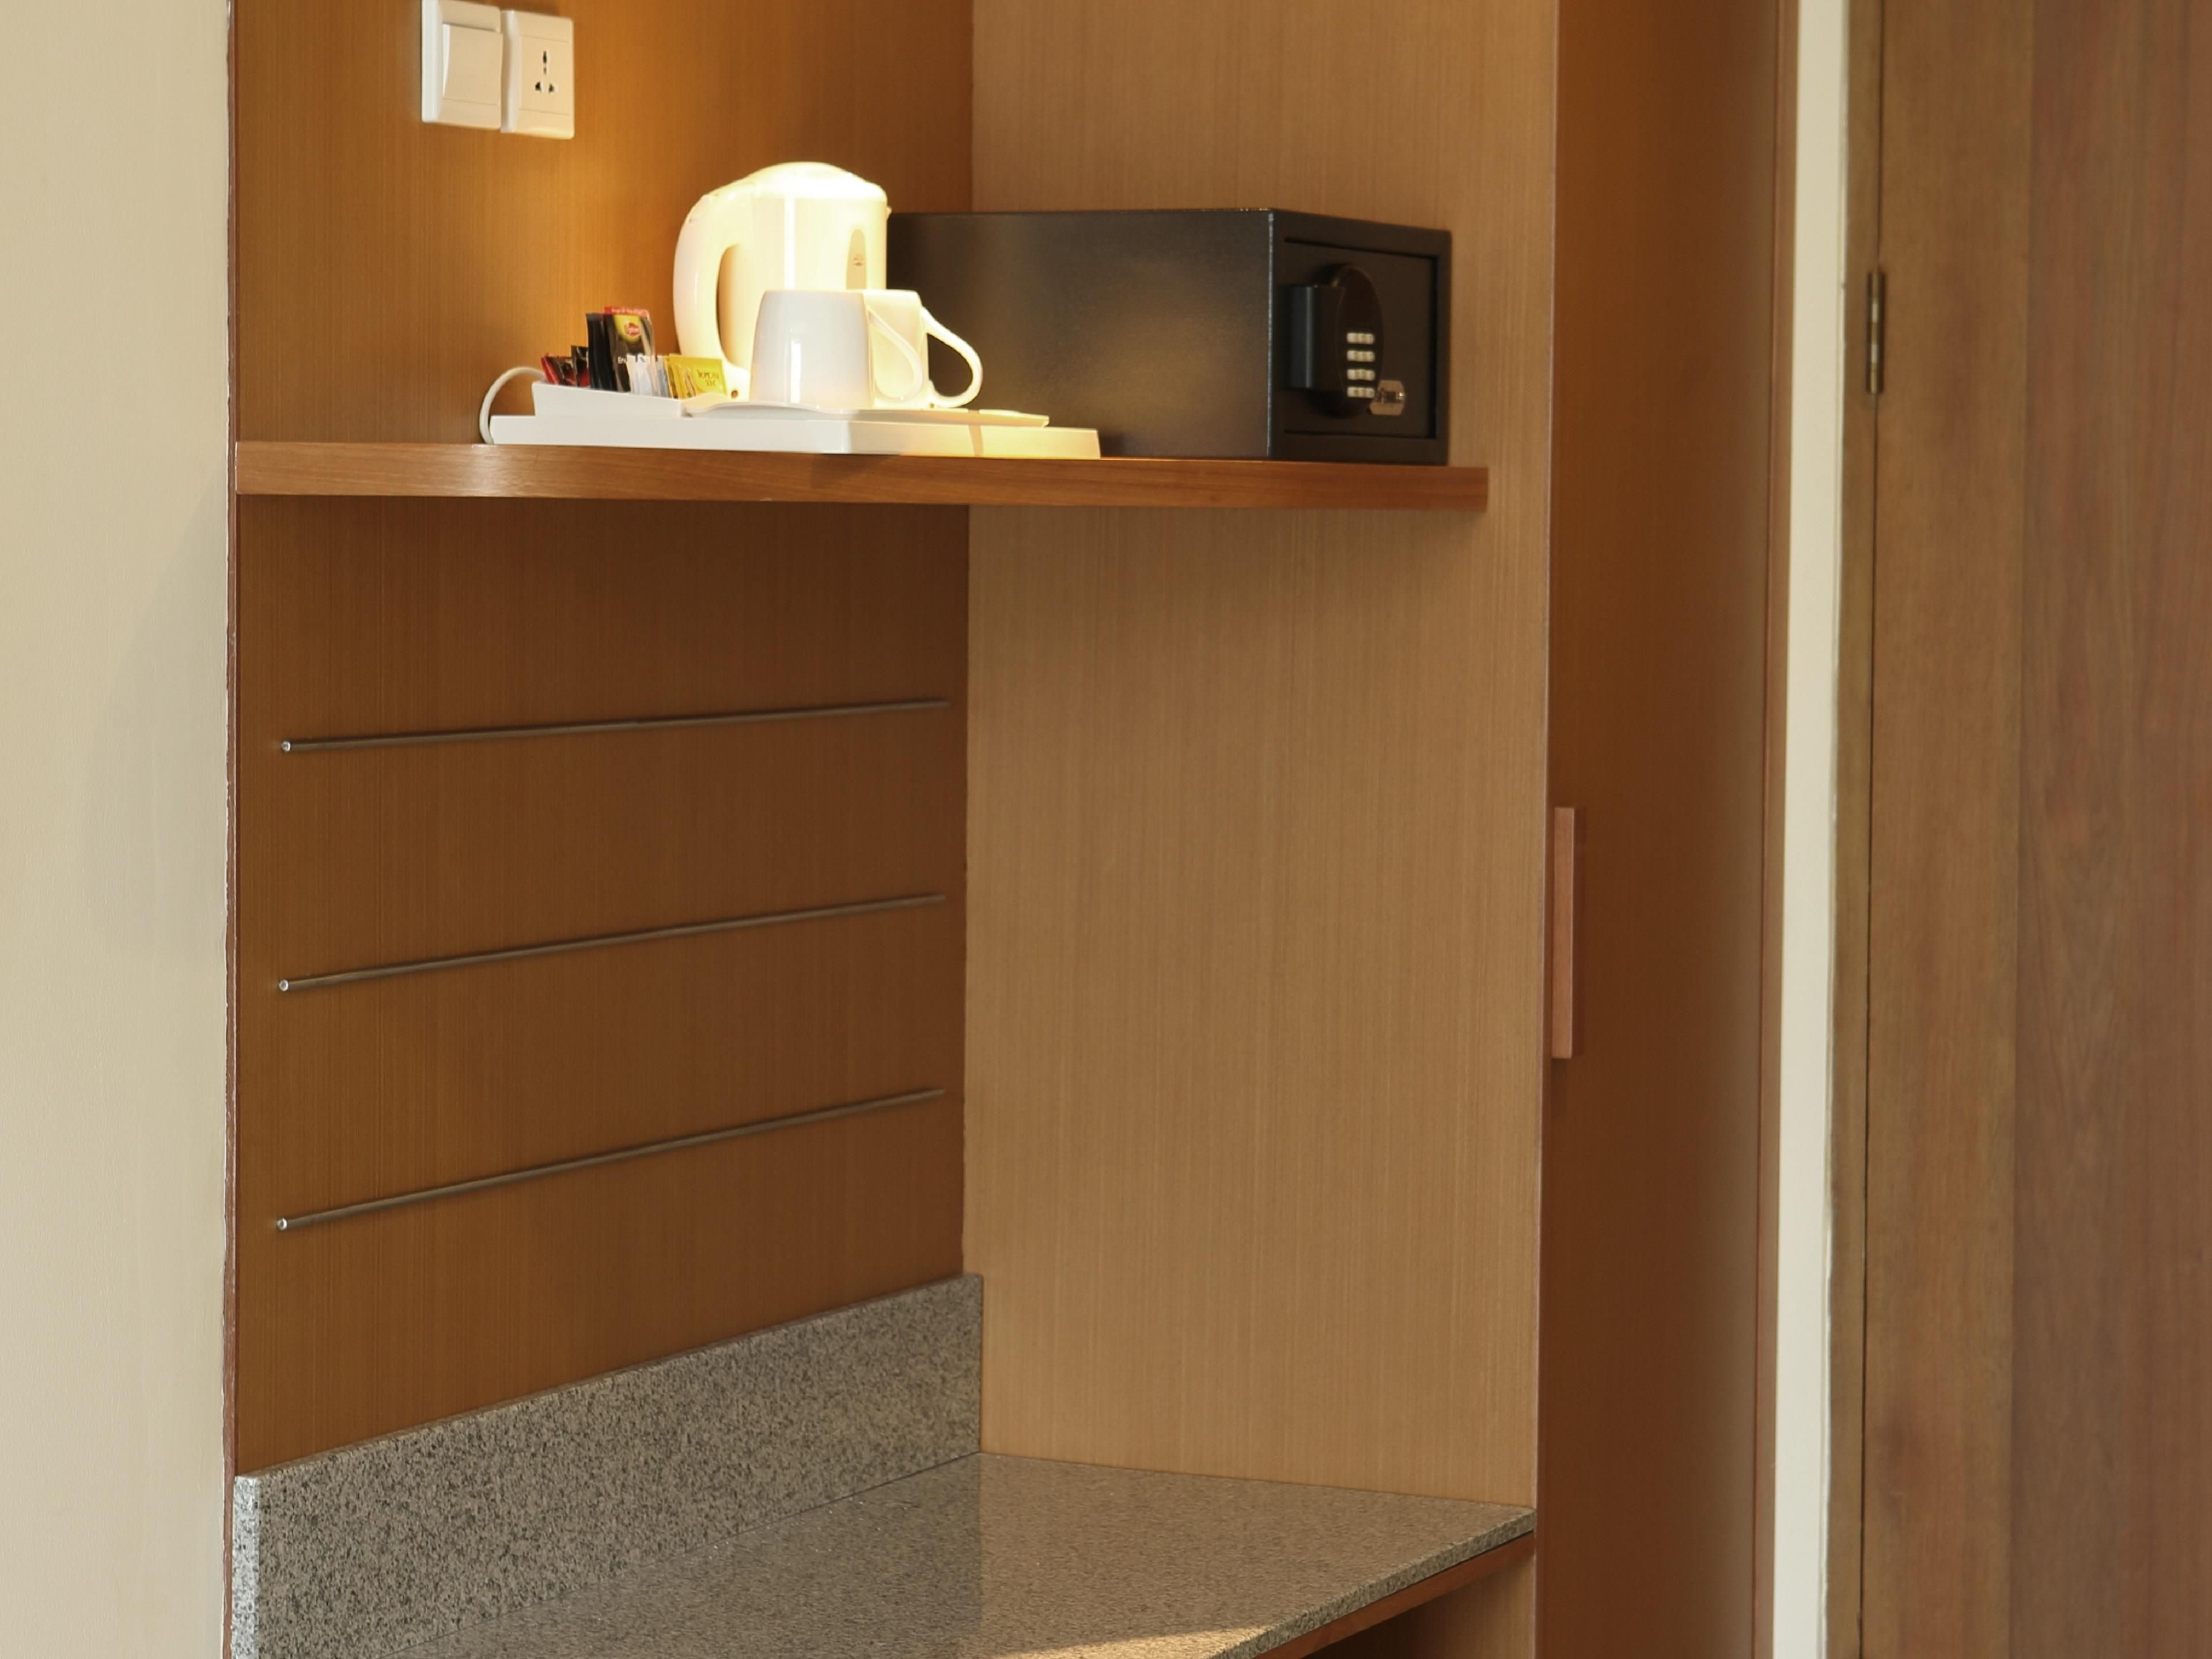 Holiday Inn Express Bali Kuta Square - In Room Amenities